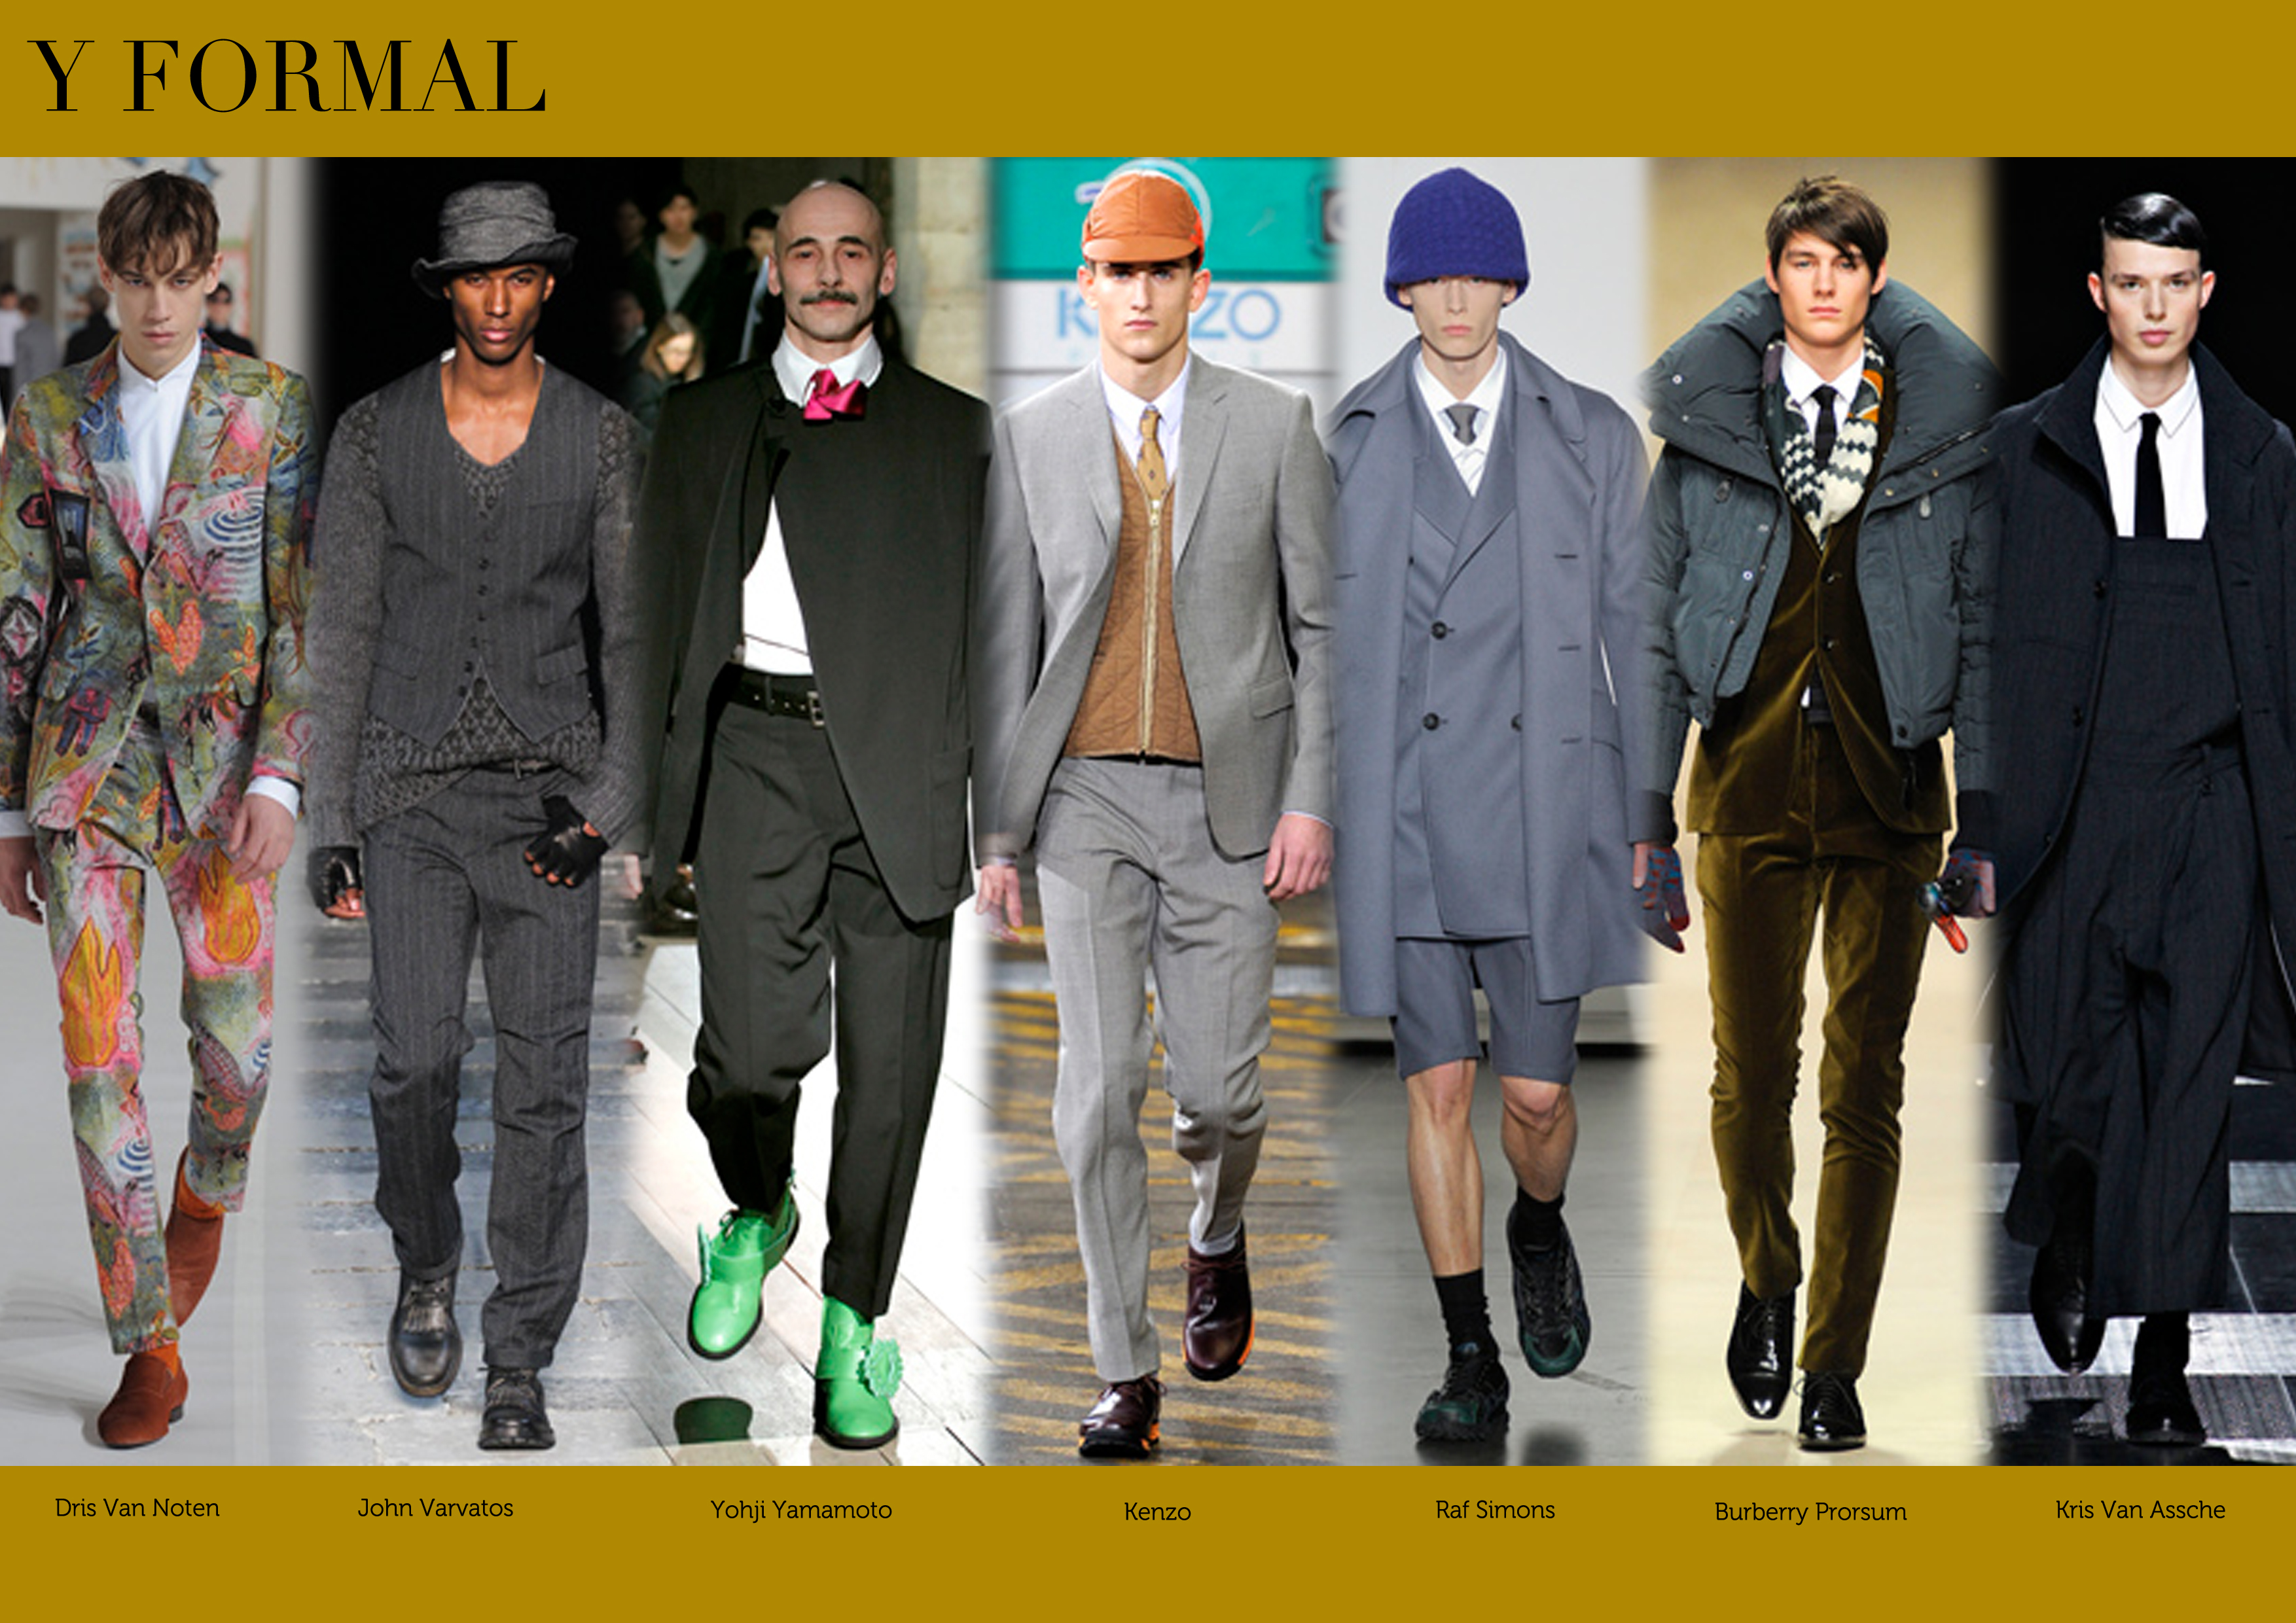 Fw2012 Menswear Runway Trend Part I The Forescope